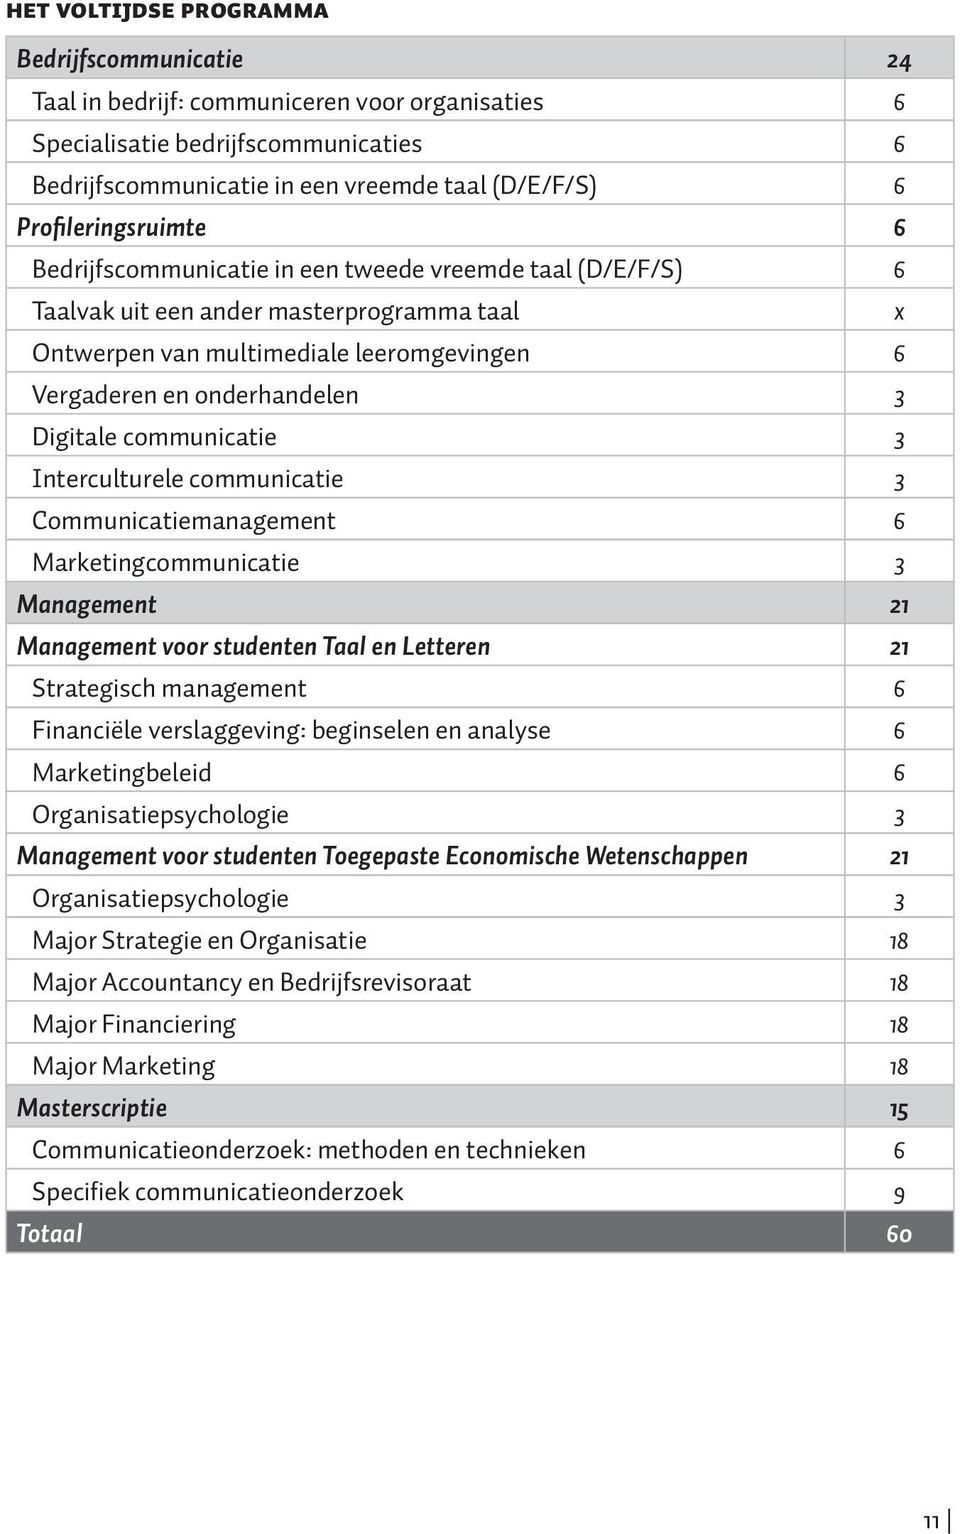 Digitale communicatie 3 Interculturele communicatie 3 Communicatiemanagement 6 Marketingcommunicatie 3 Management 21 Management voor studenten Taal en Letteren 21 Strategisch management 6 Financiële